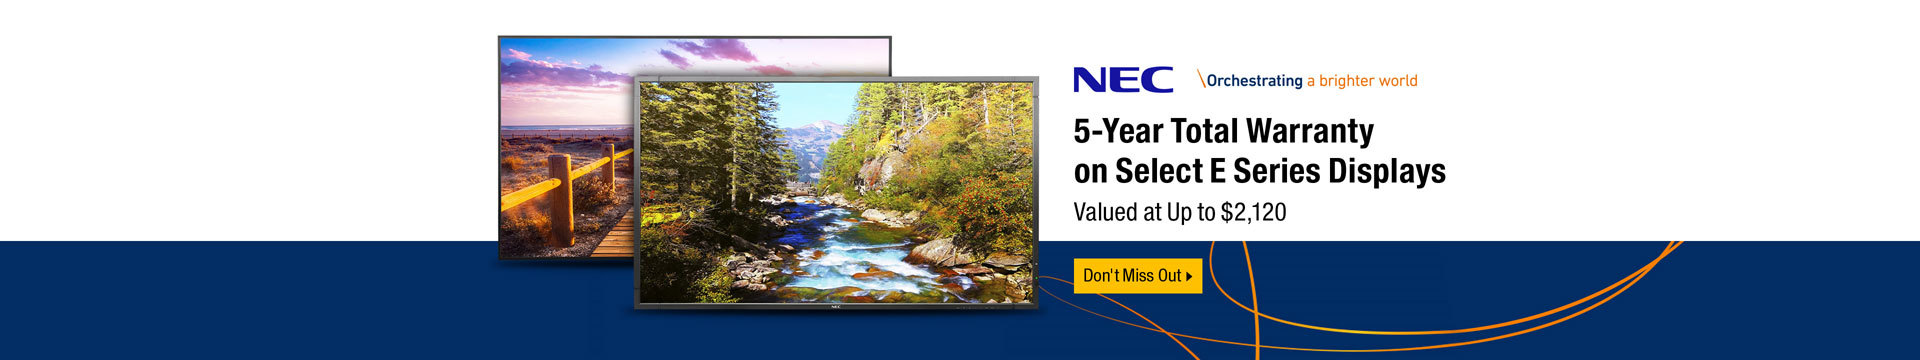 5-Year Total Warranty on Select E Series Displays